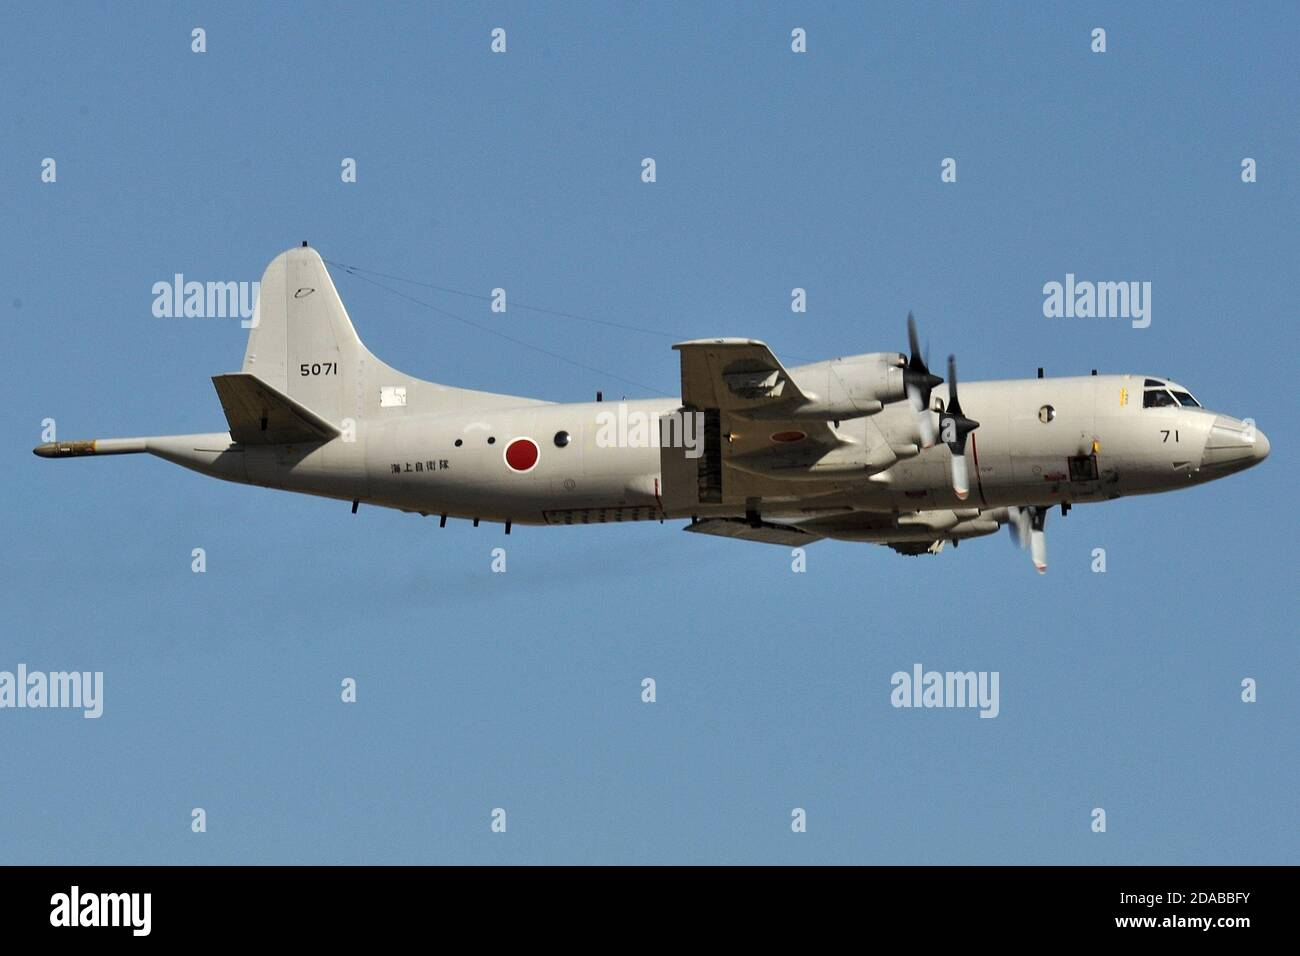 LOCKHEED P-3C ORION MARITIME PATROL AIRCRAFT OF THE JAPANESE NAVY (JMSDF). Stock Photo